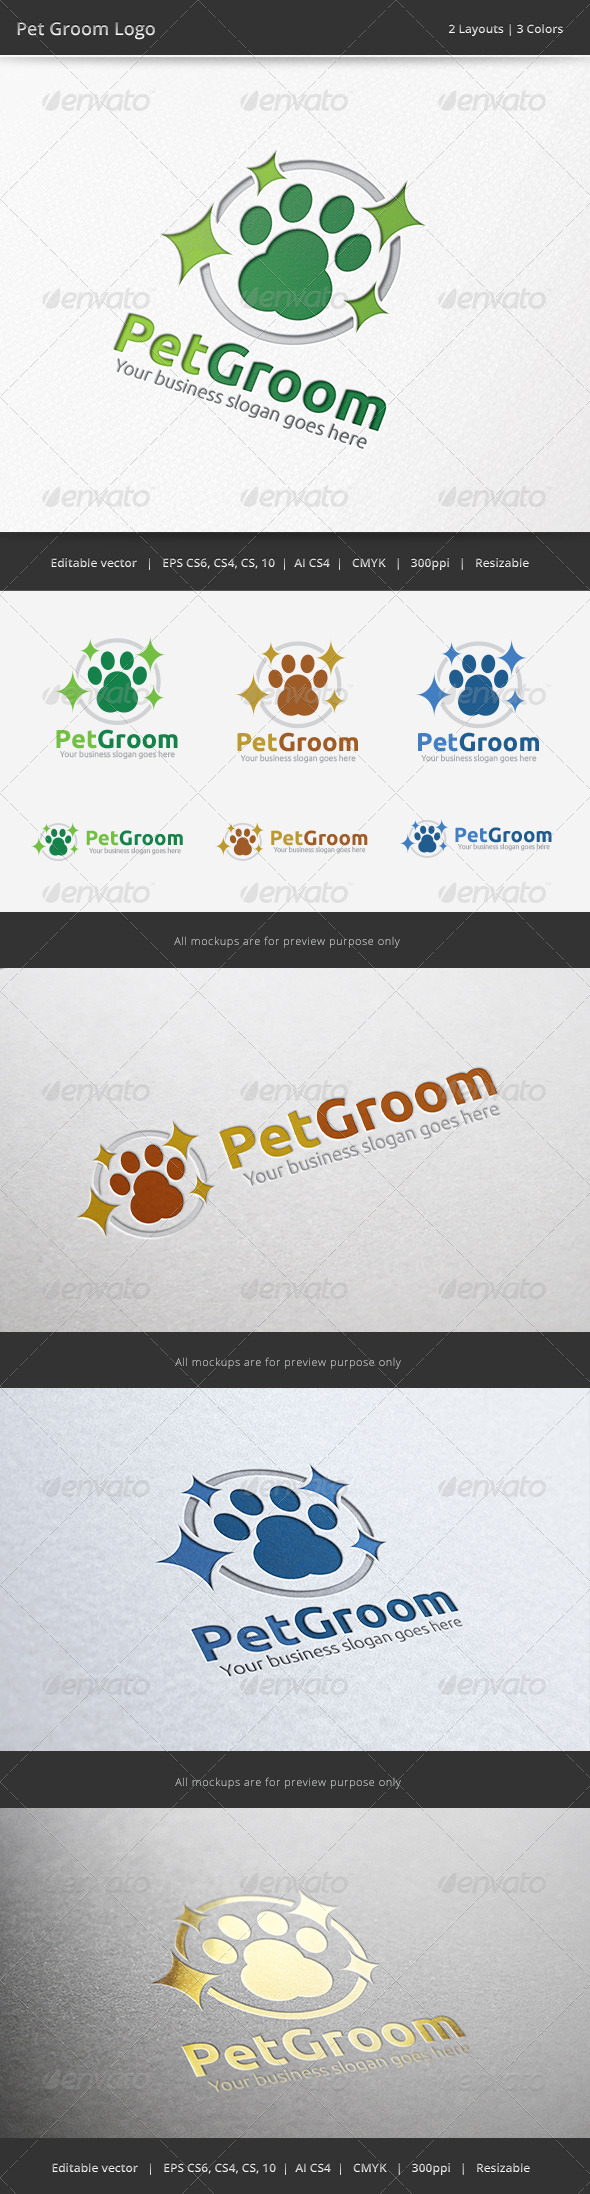 GraphicRiver Pet Groom Logo 6531618